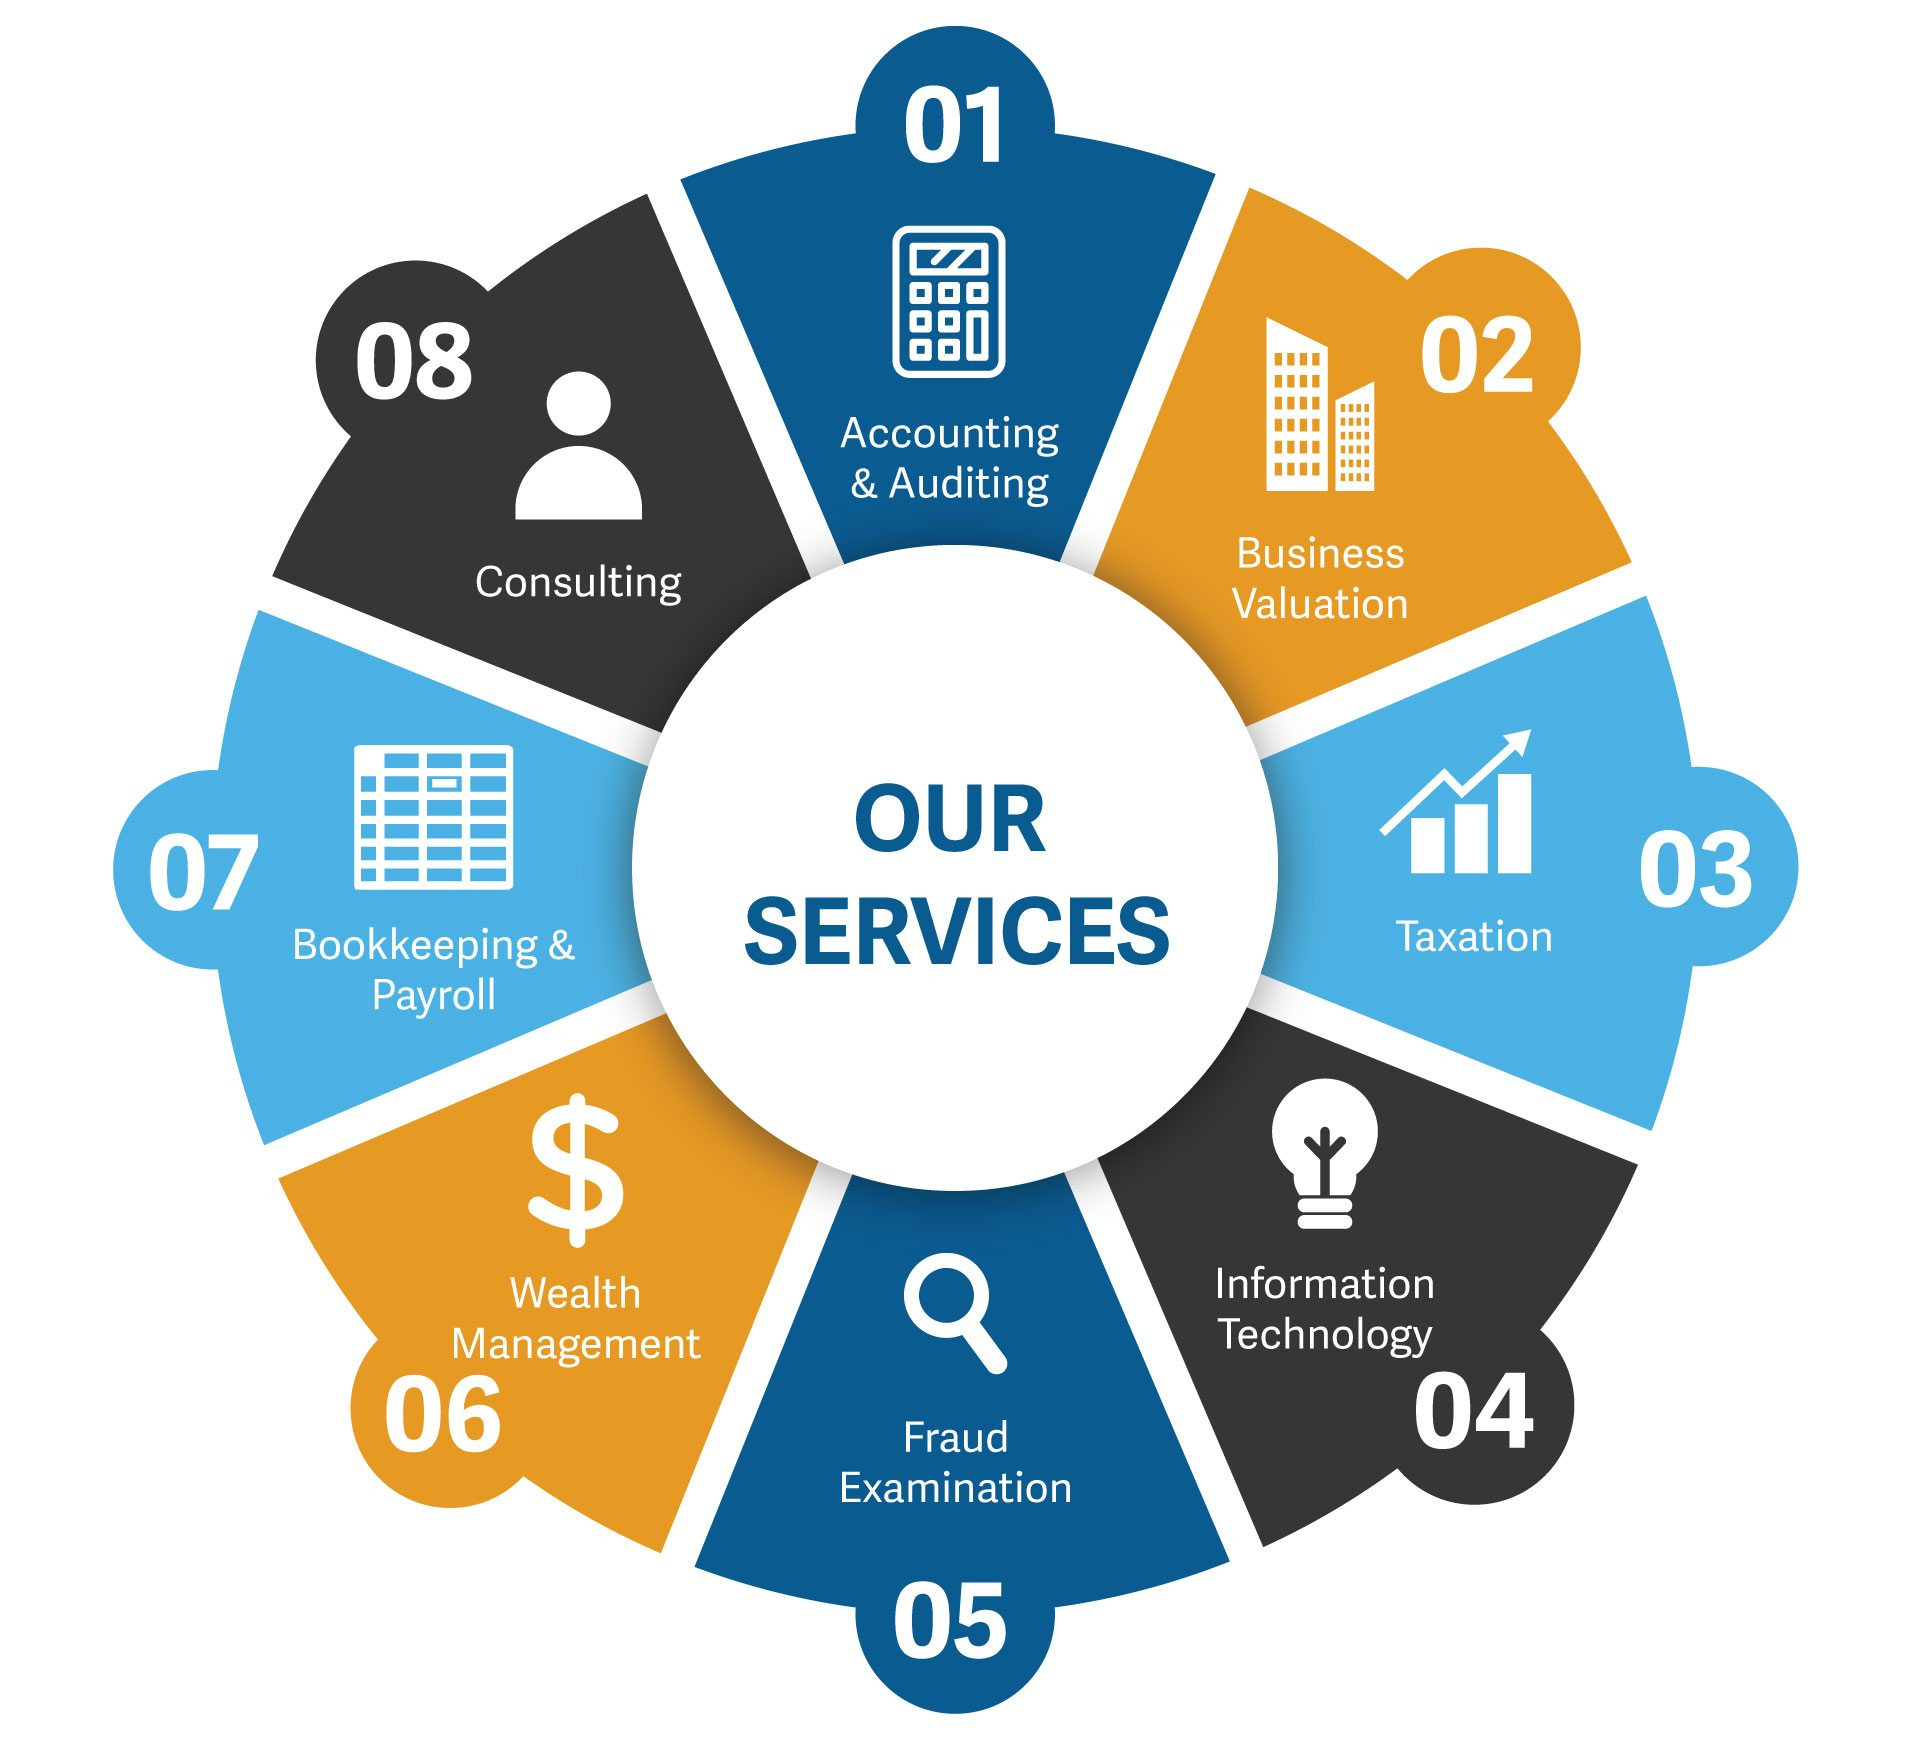 Our Services: Accounting & Auditing, Business Valuation, Taxation, Information Technology, Fraud Examination, Wealth Management, Bookkeeping & Payroll and Consulting.